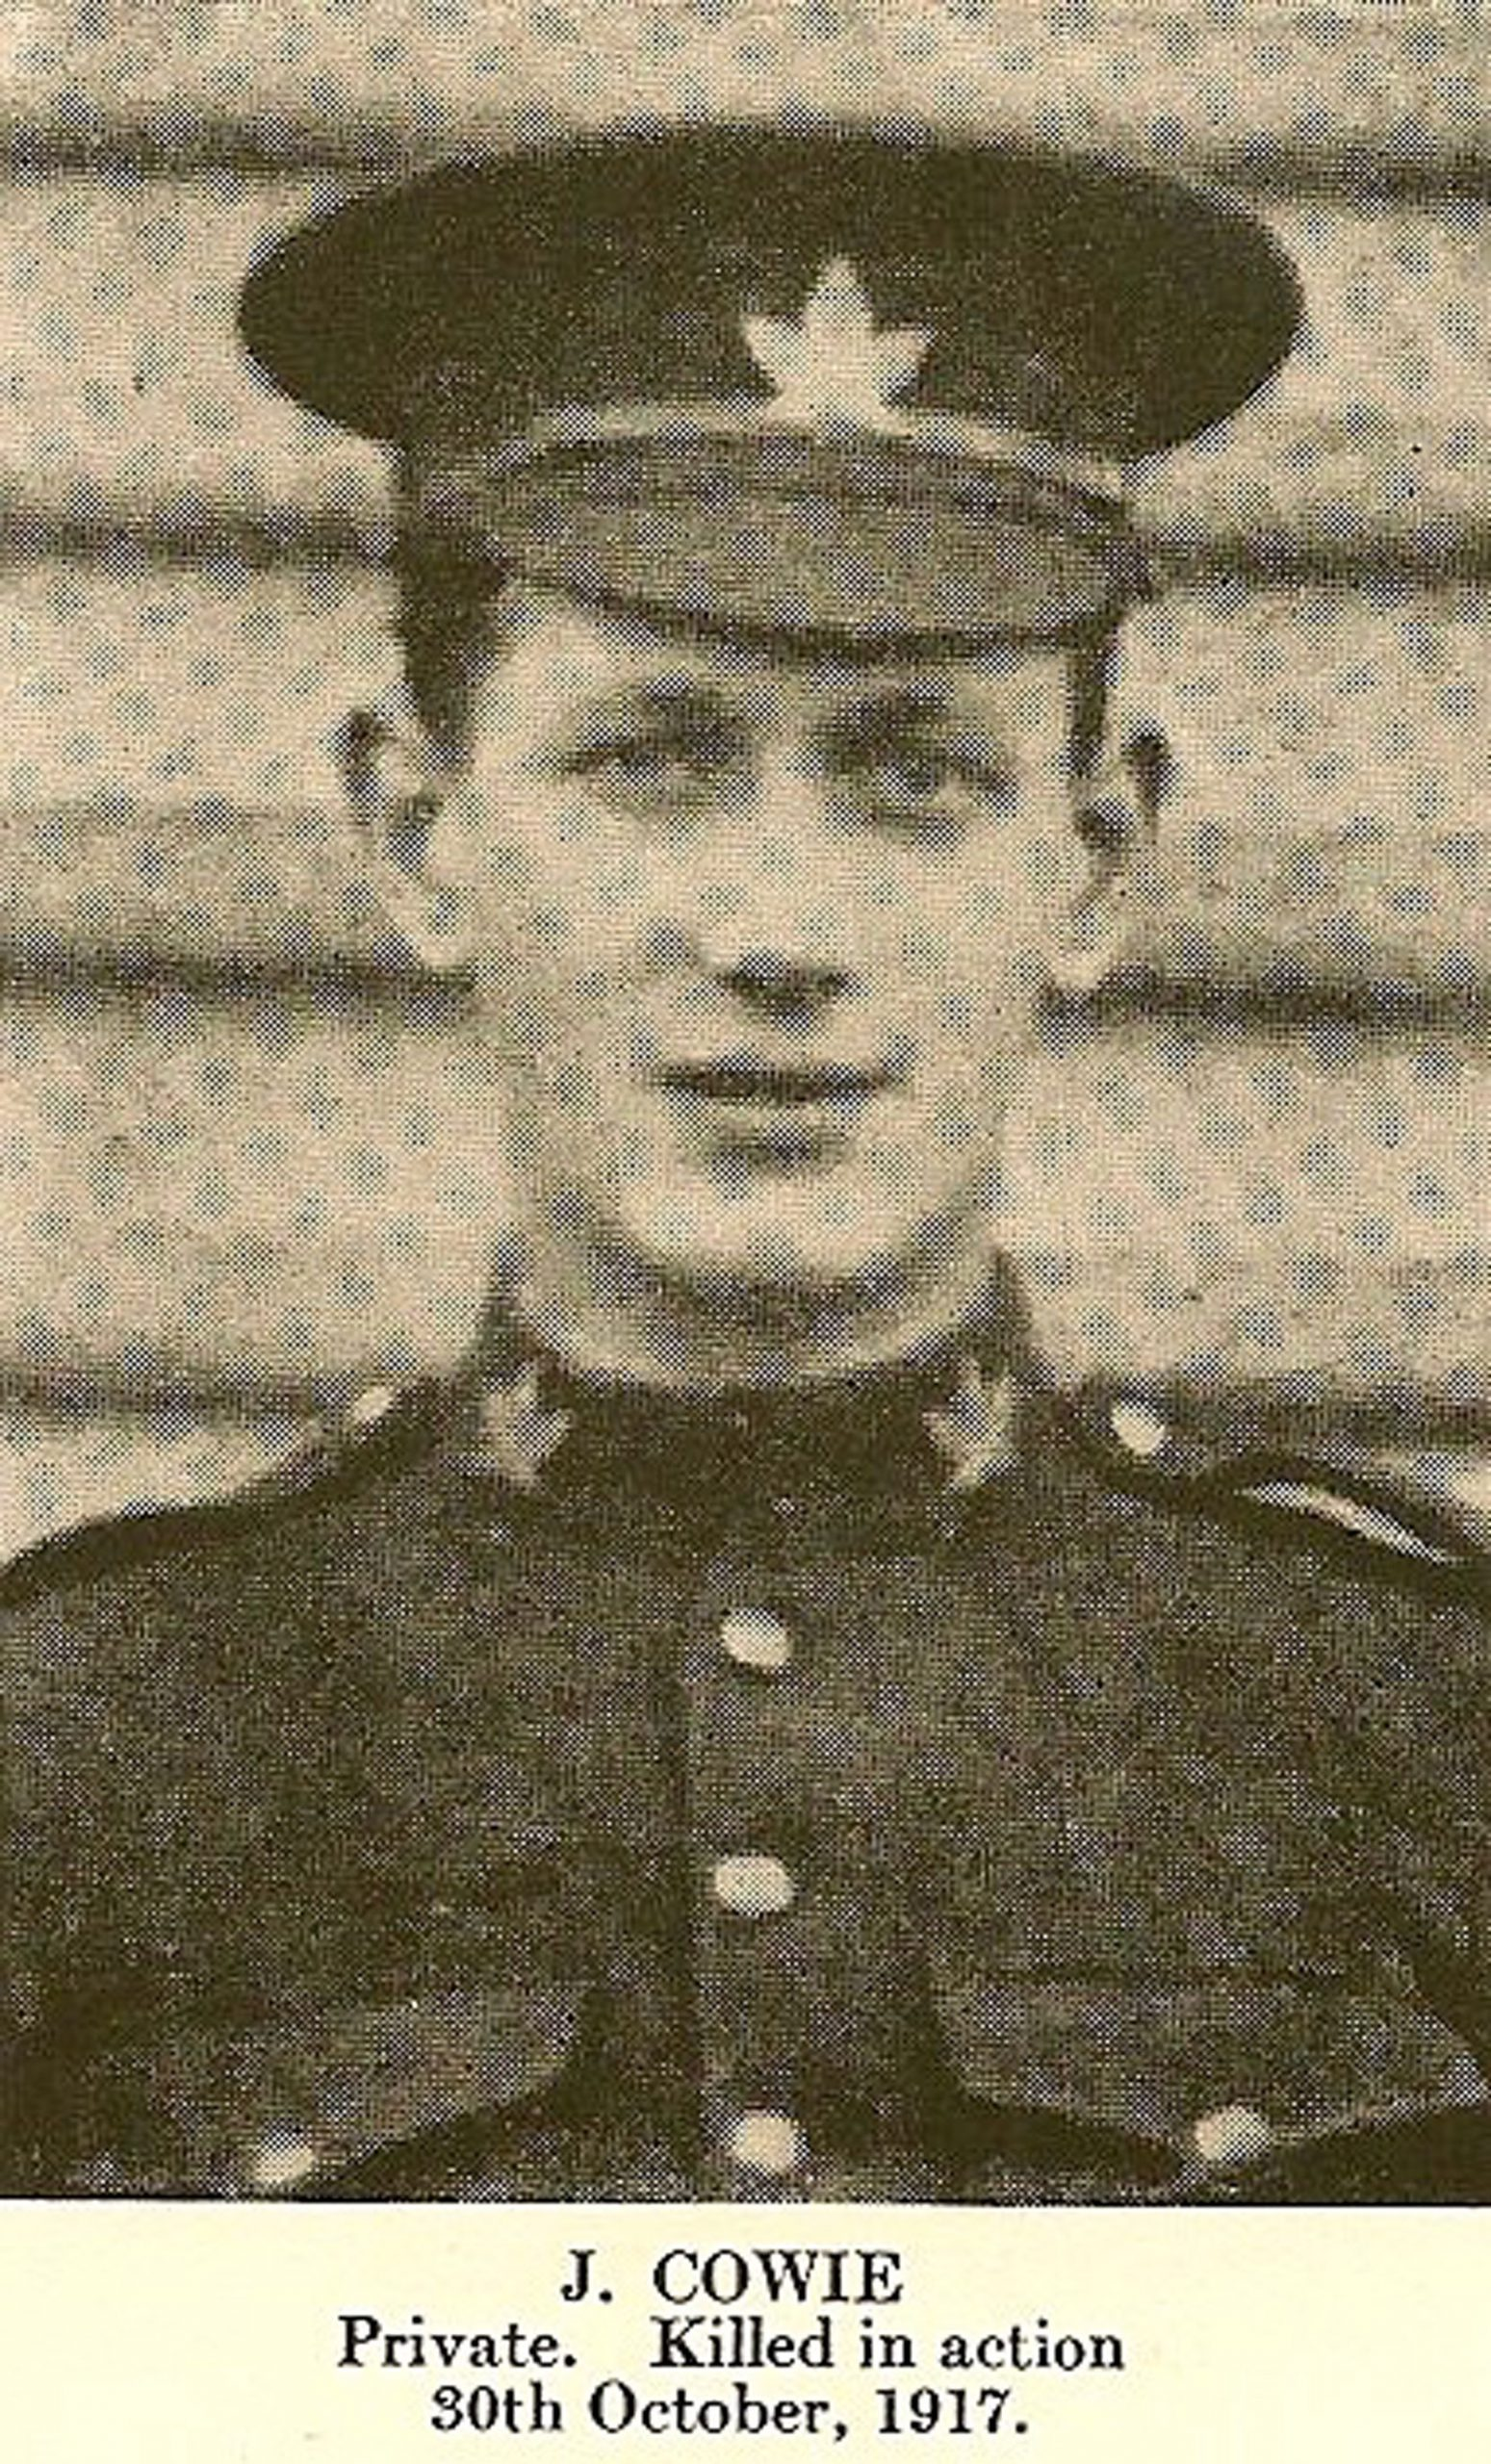 Private John Cowie, who killed in action 30 October 1917 (photo courtesy of John Cowie)